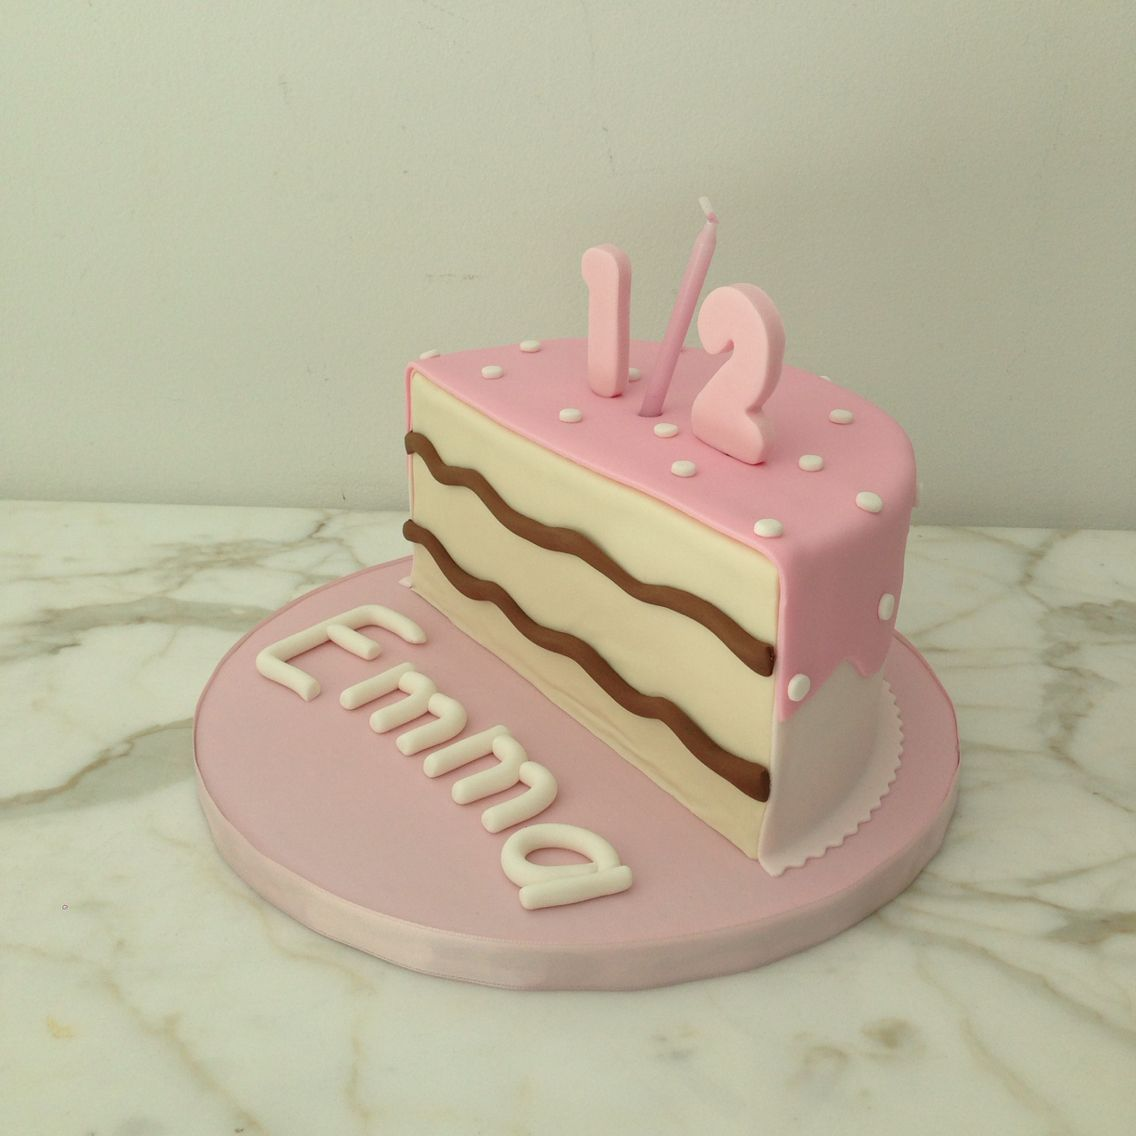 Marvelous Pink Half Birthday Cake 1 2 6 Months Baby Half Cake With Funny Birthday Cards Online Barepcheapnameinfo